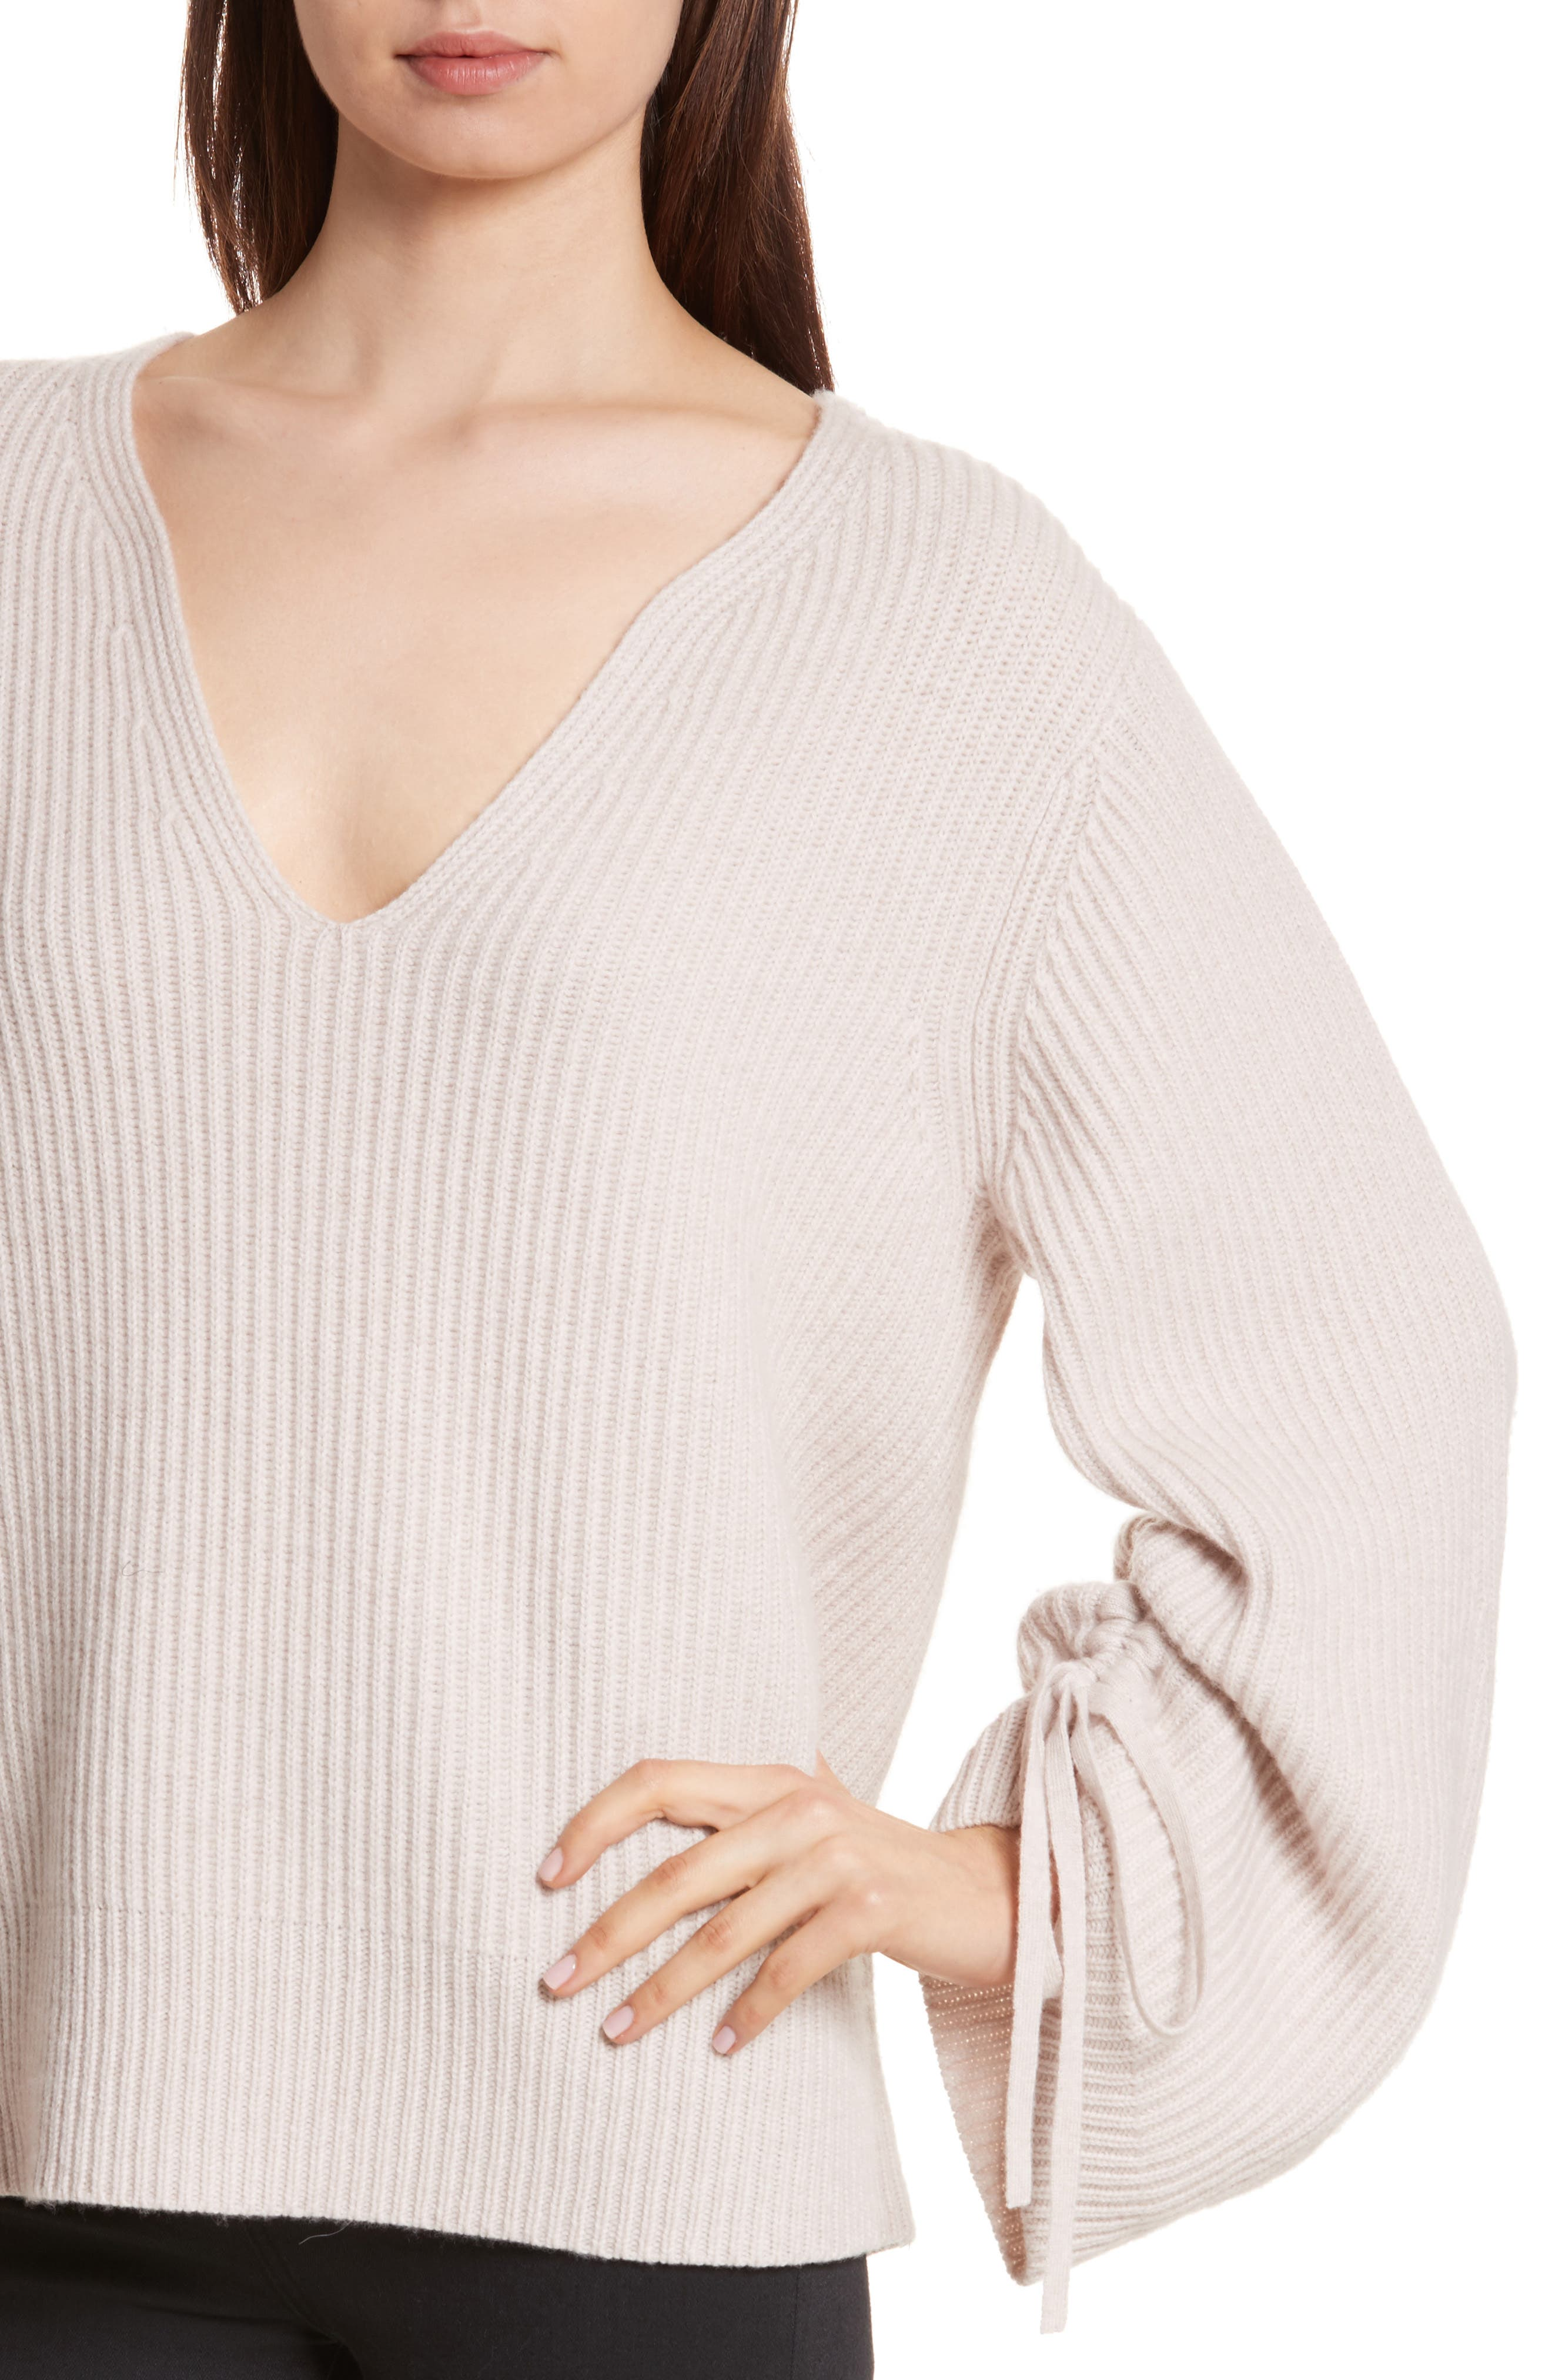 Anneka Wool & Cashmere Puff Sleeve Sweater,                             Alternate thumbnail 4, color,                             270